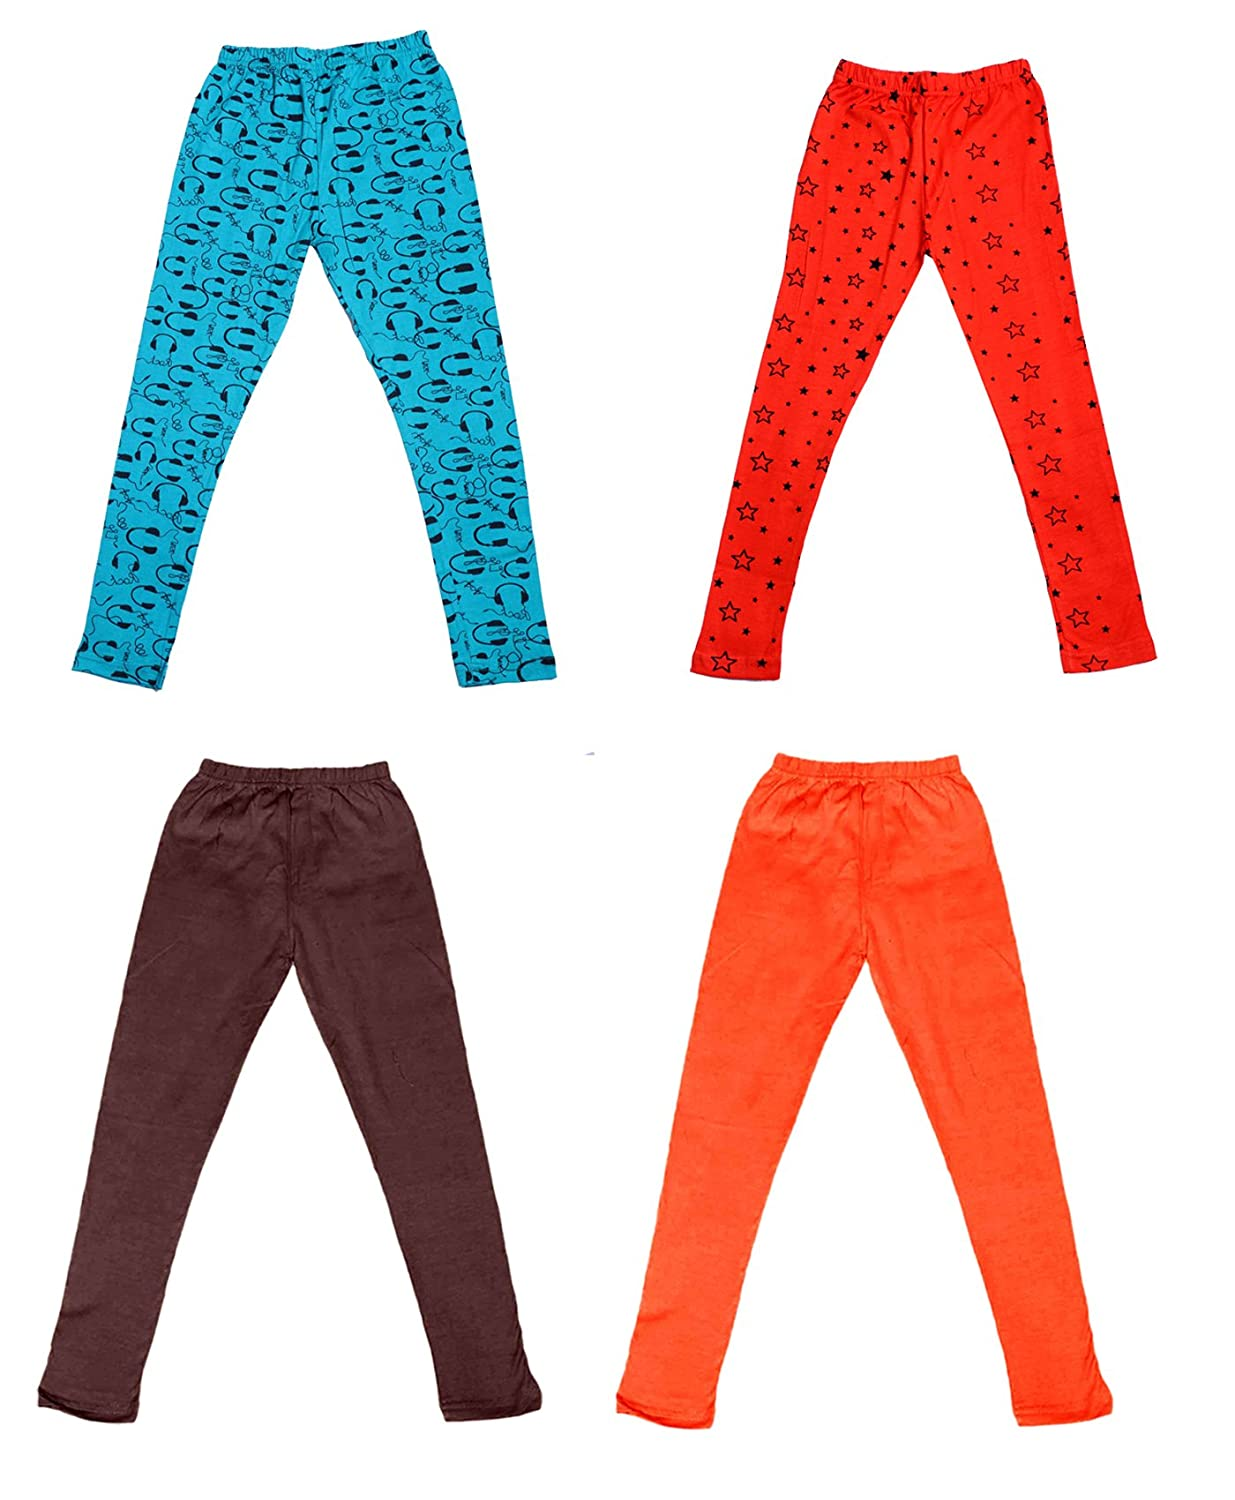 and 2 Cotton Printed Legging Pants /_Multicolor/_Size-4-5 Years/_71413141617-IW-P4-26 Indistar Girls 2 Cotton Solid Legging Pants Pack Of 4